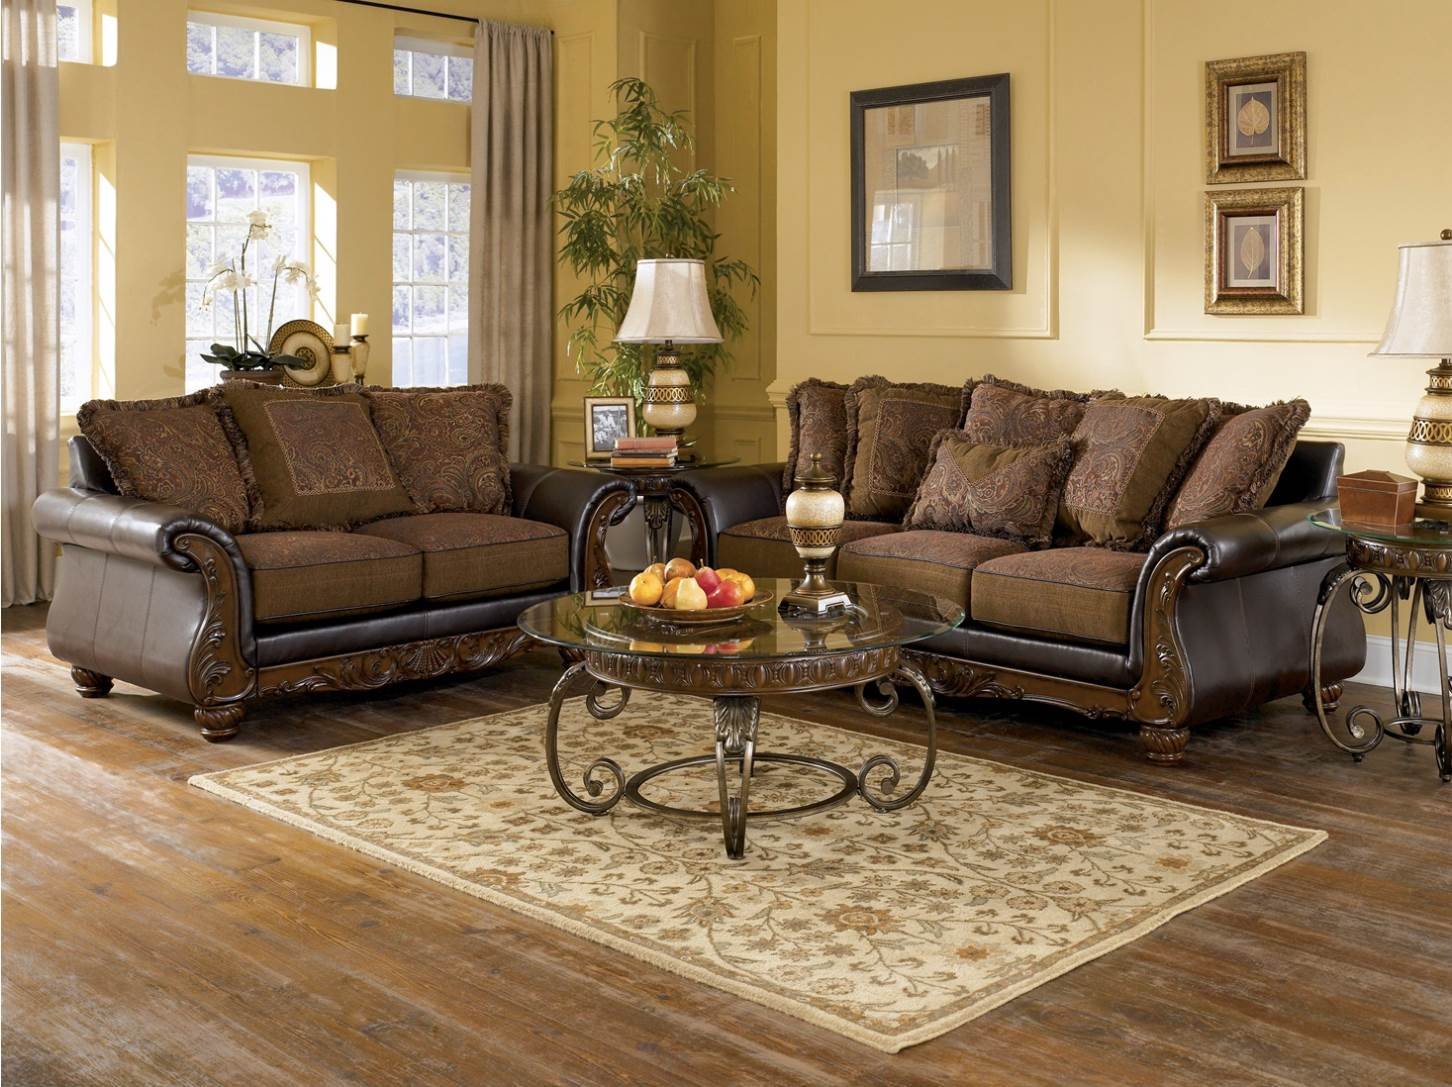 Raymour Flanigan Furniture Sale New And Living Room Sets On Ideas with regard to Raymour And Flanigan Living Room Set